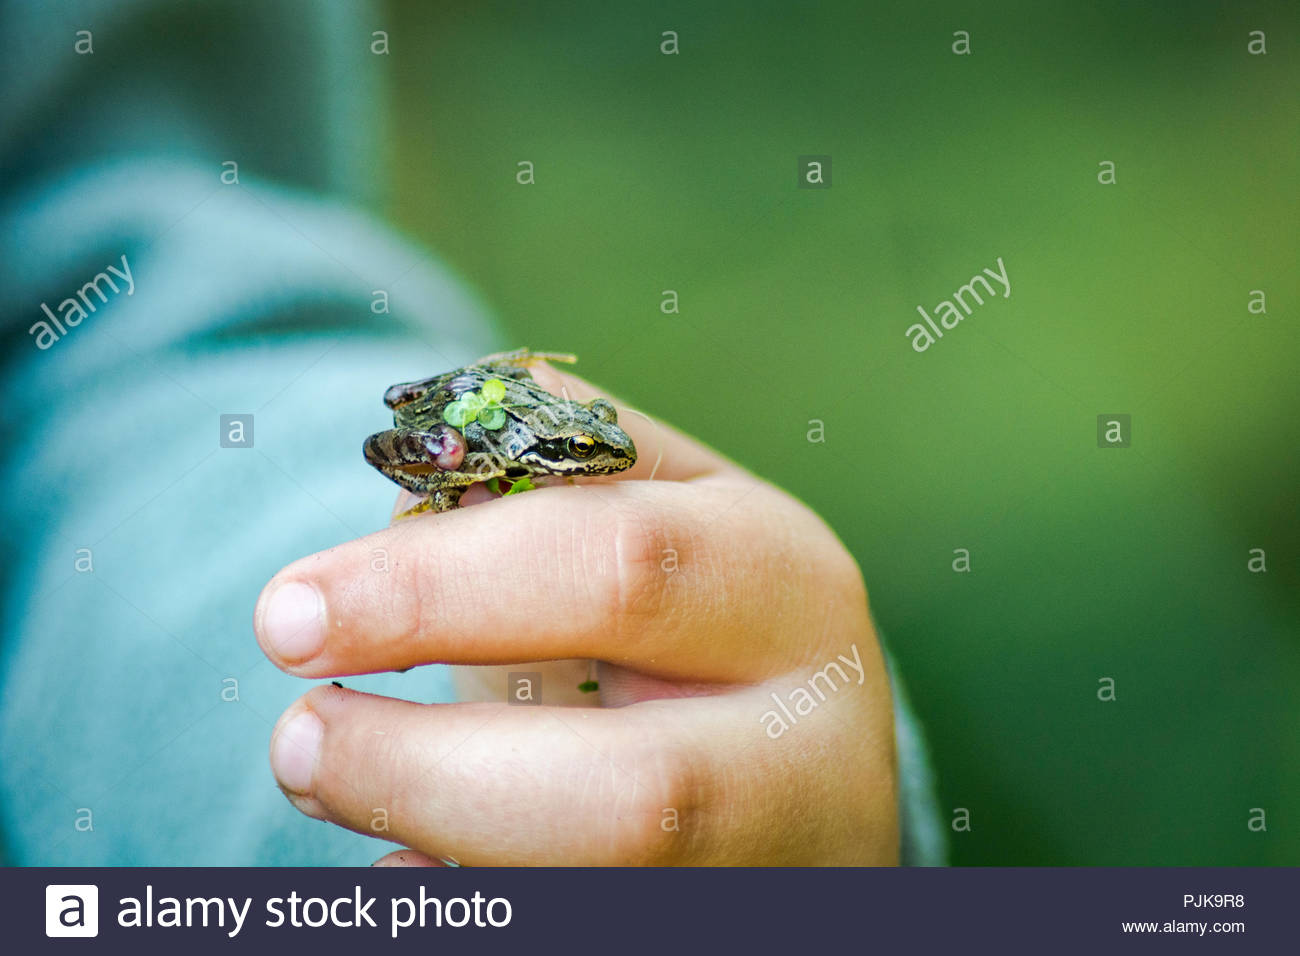 Small frog on a hand - Stock Image